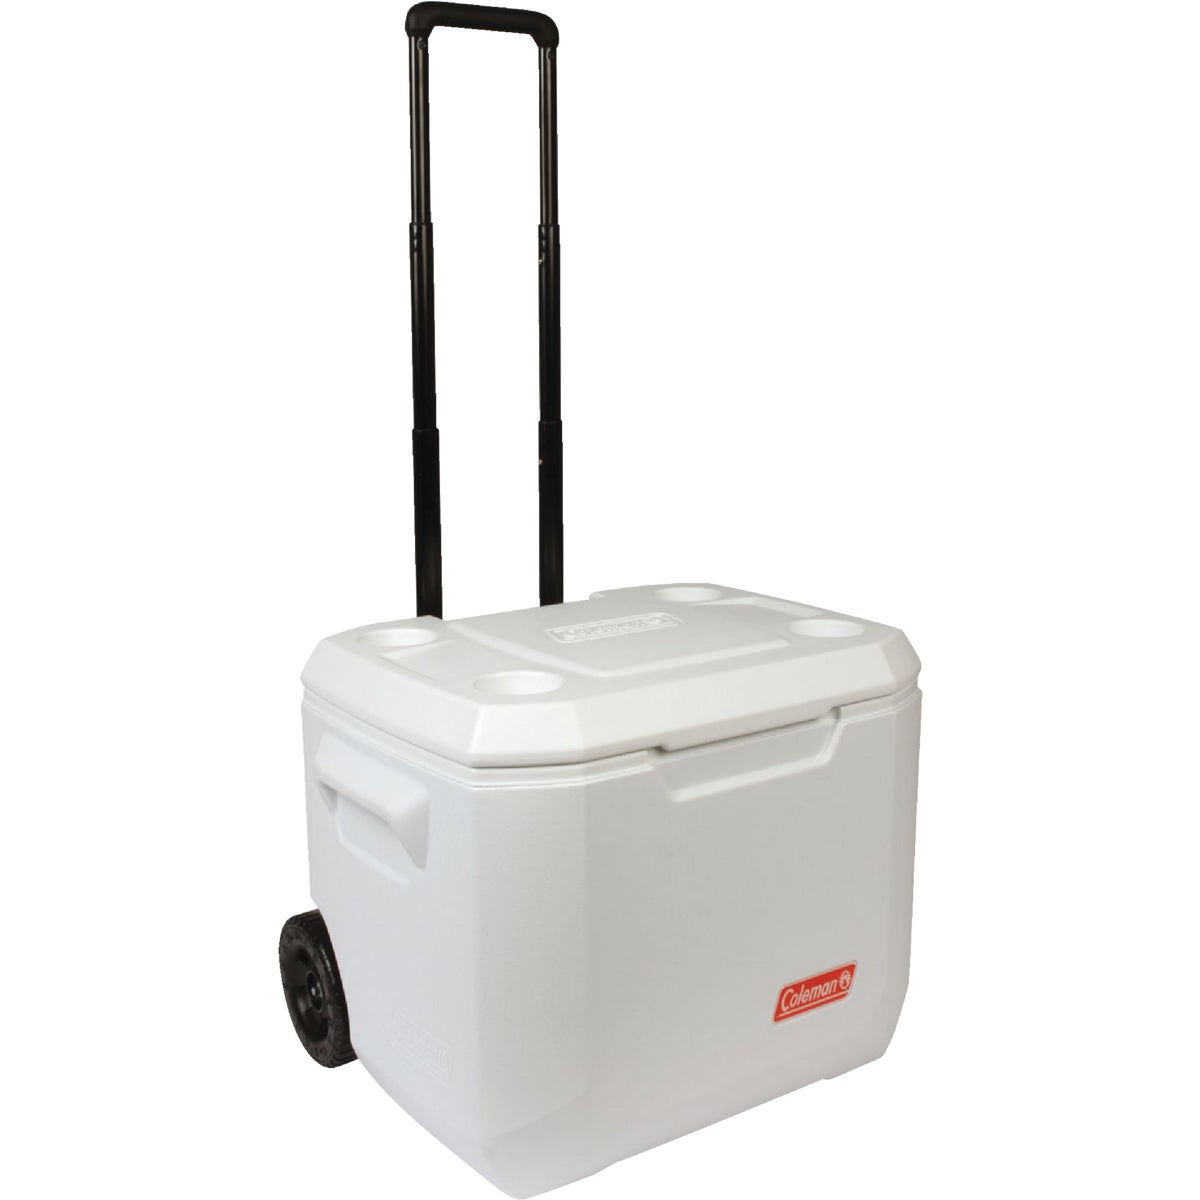 50 QT MARINE COOLER - 3000001839 by Coleman